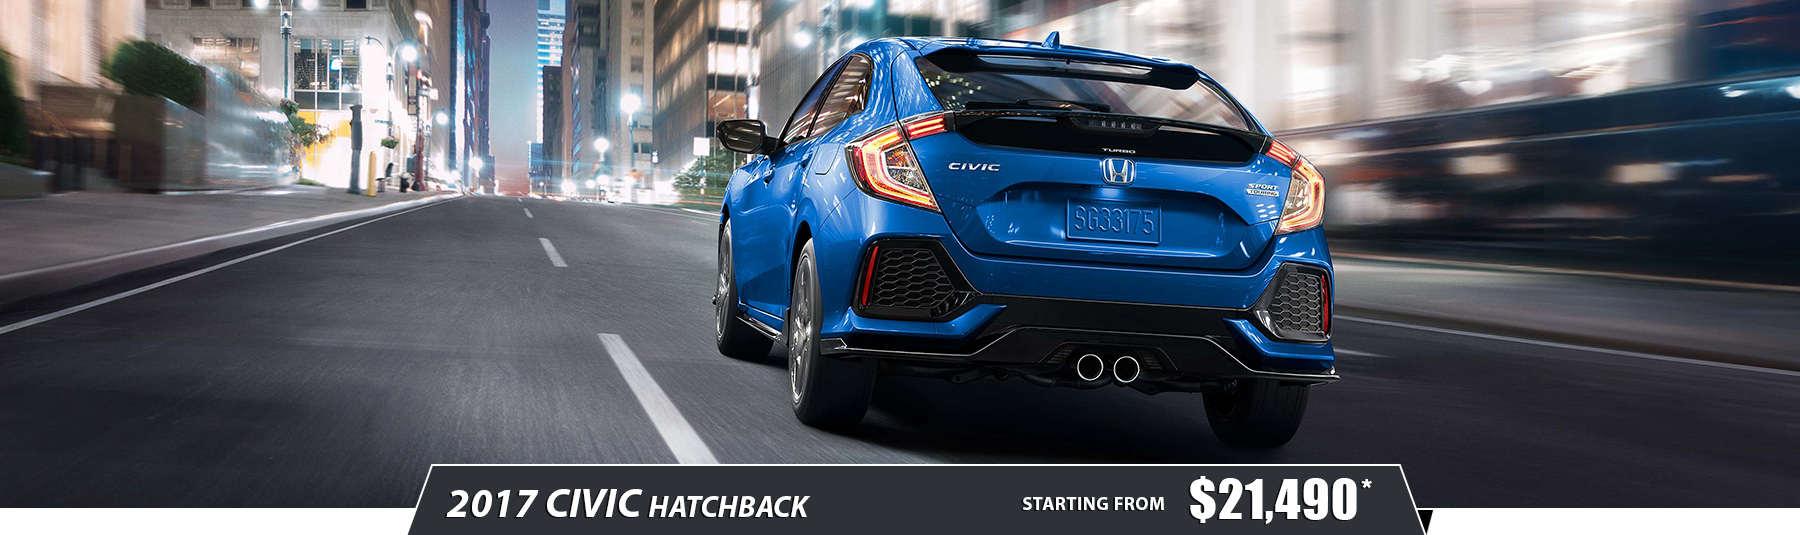 header-civic-hb